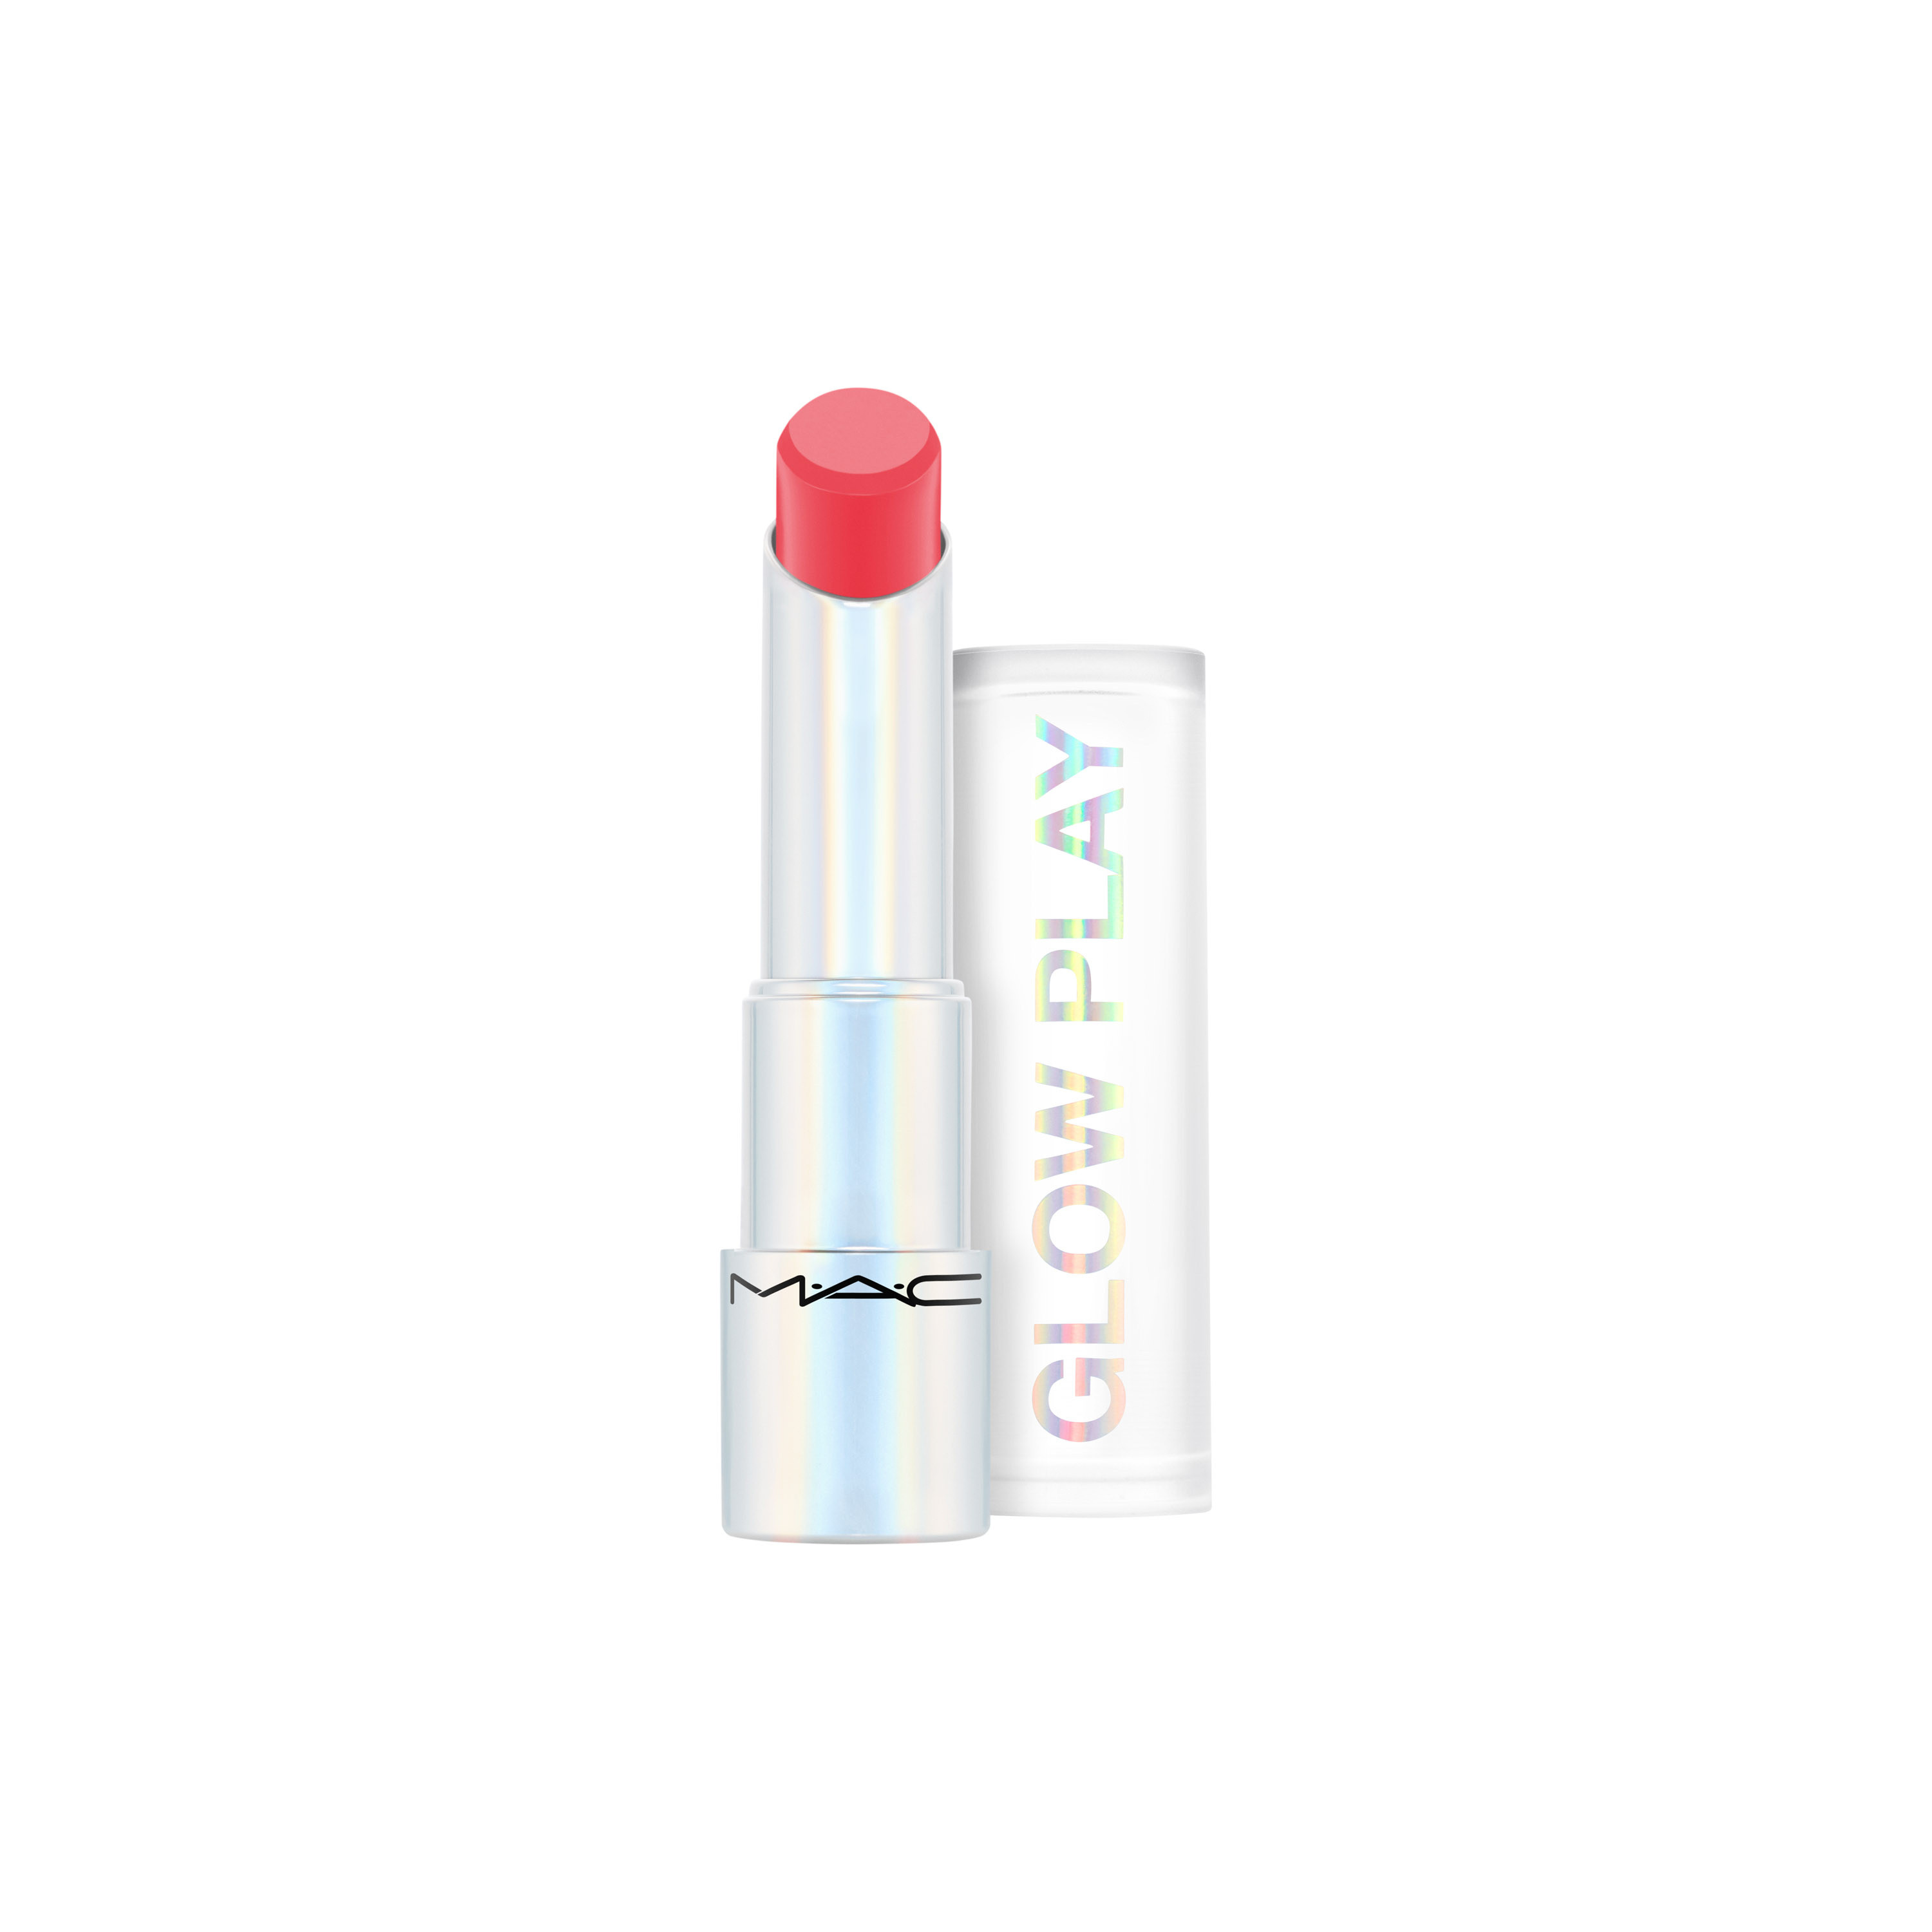 Glow Play Lip Balm - Floral Coral, FLORAL CORAL, large image number 0